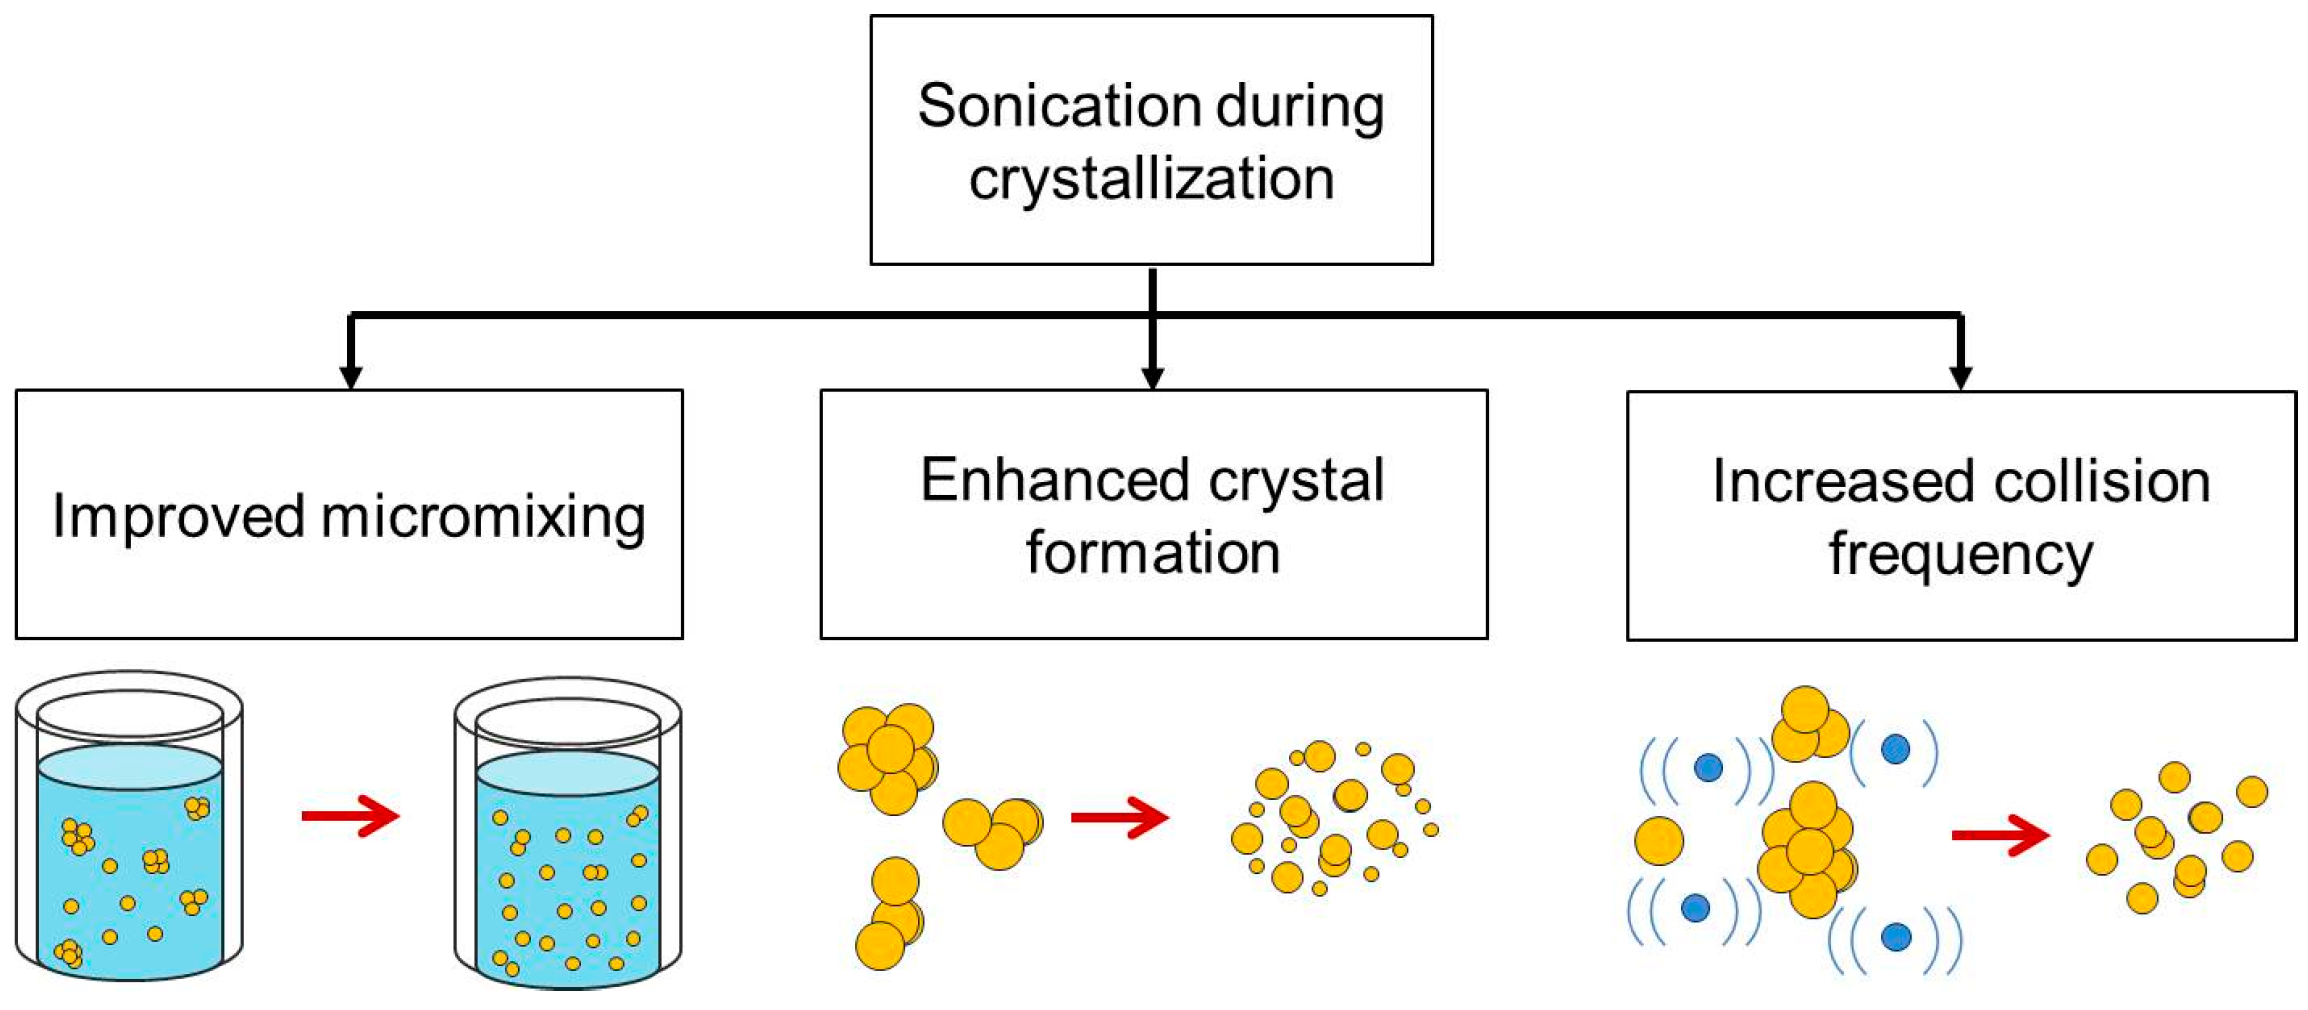 crystals  full text agglomeration control  ultrasonic crystallization   active